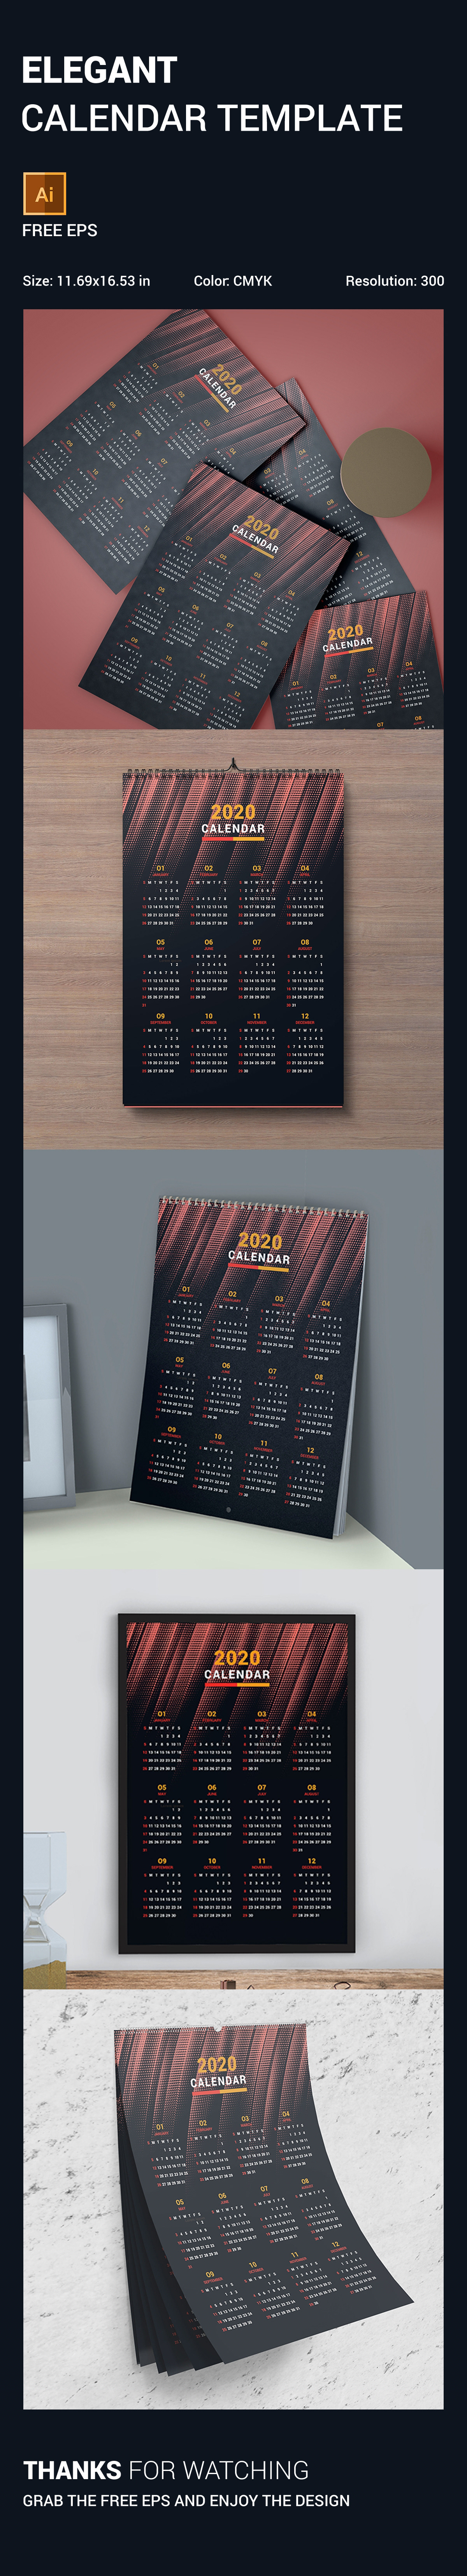 calendar,design,free,free calendar,free download,freebie,newyear,psd,template,yearly calendar